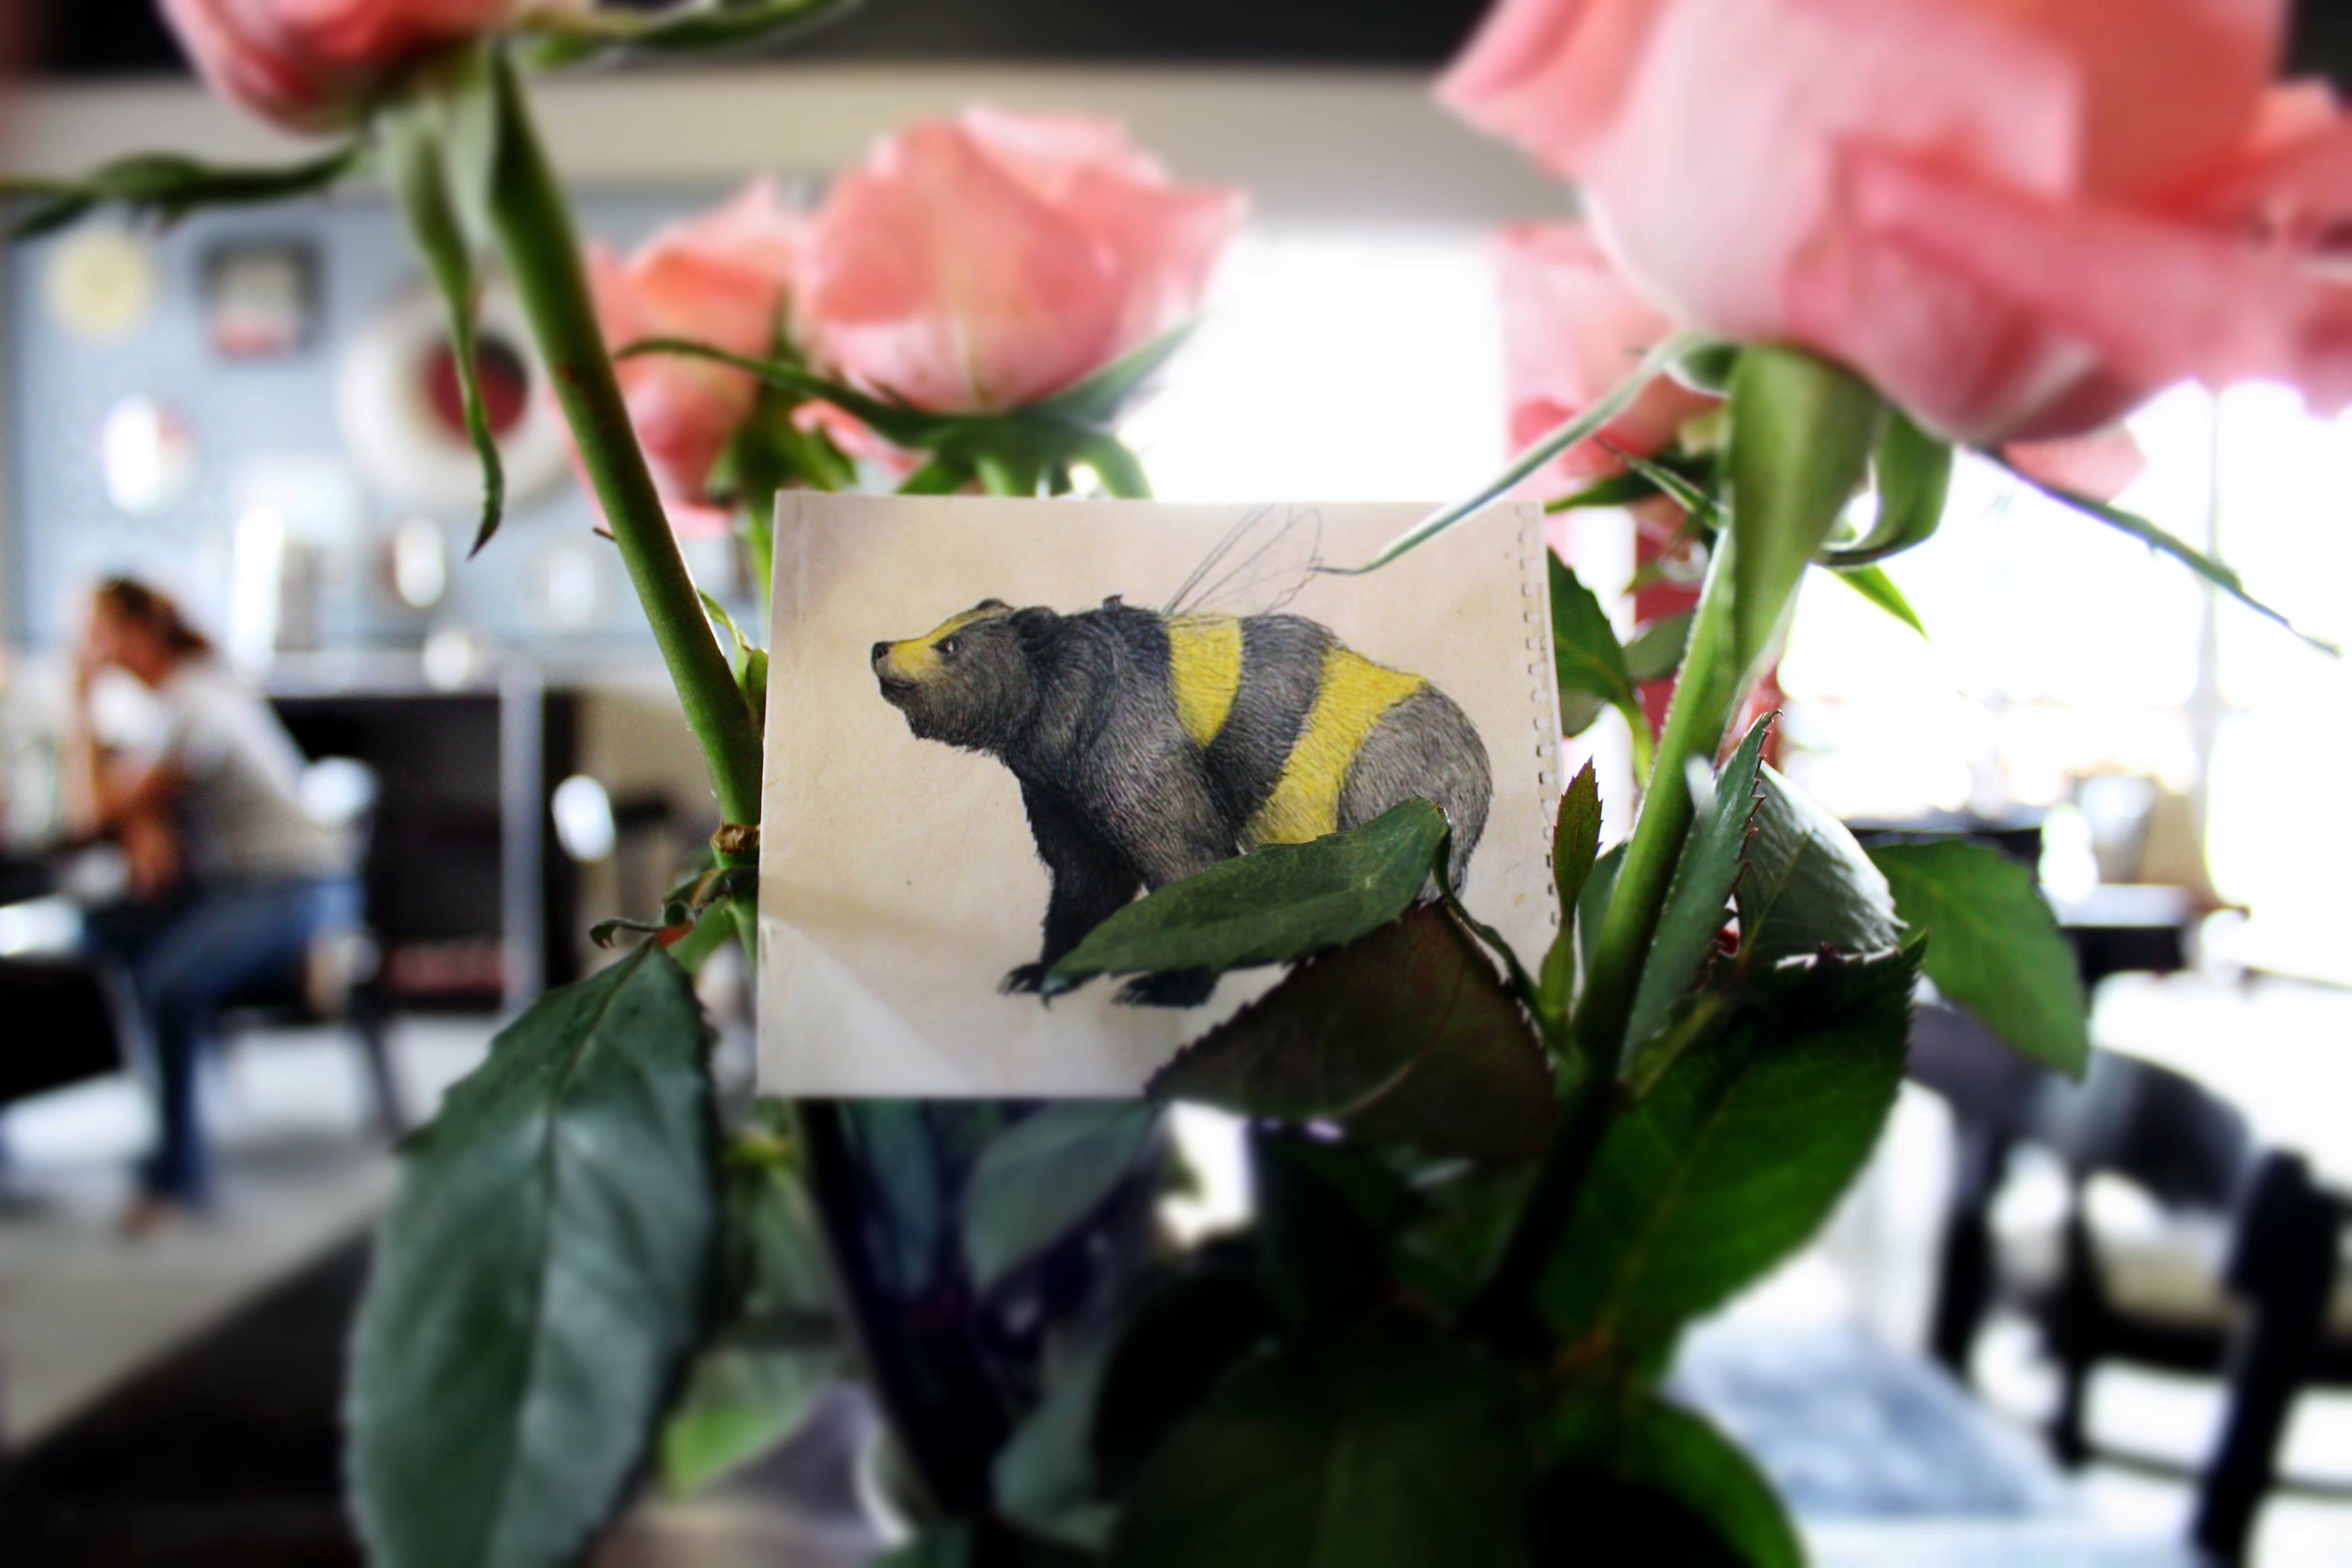 Free stock photo of bear, bee, blurred background, card